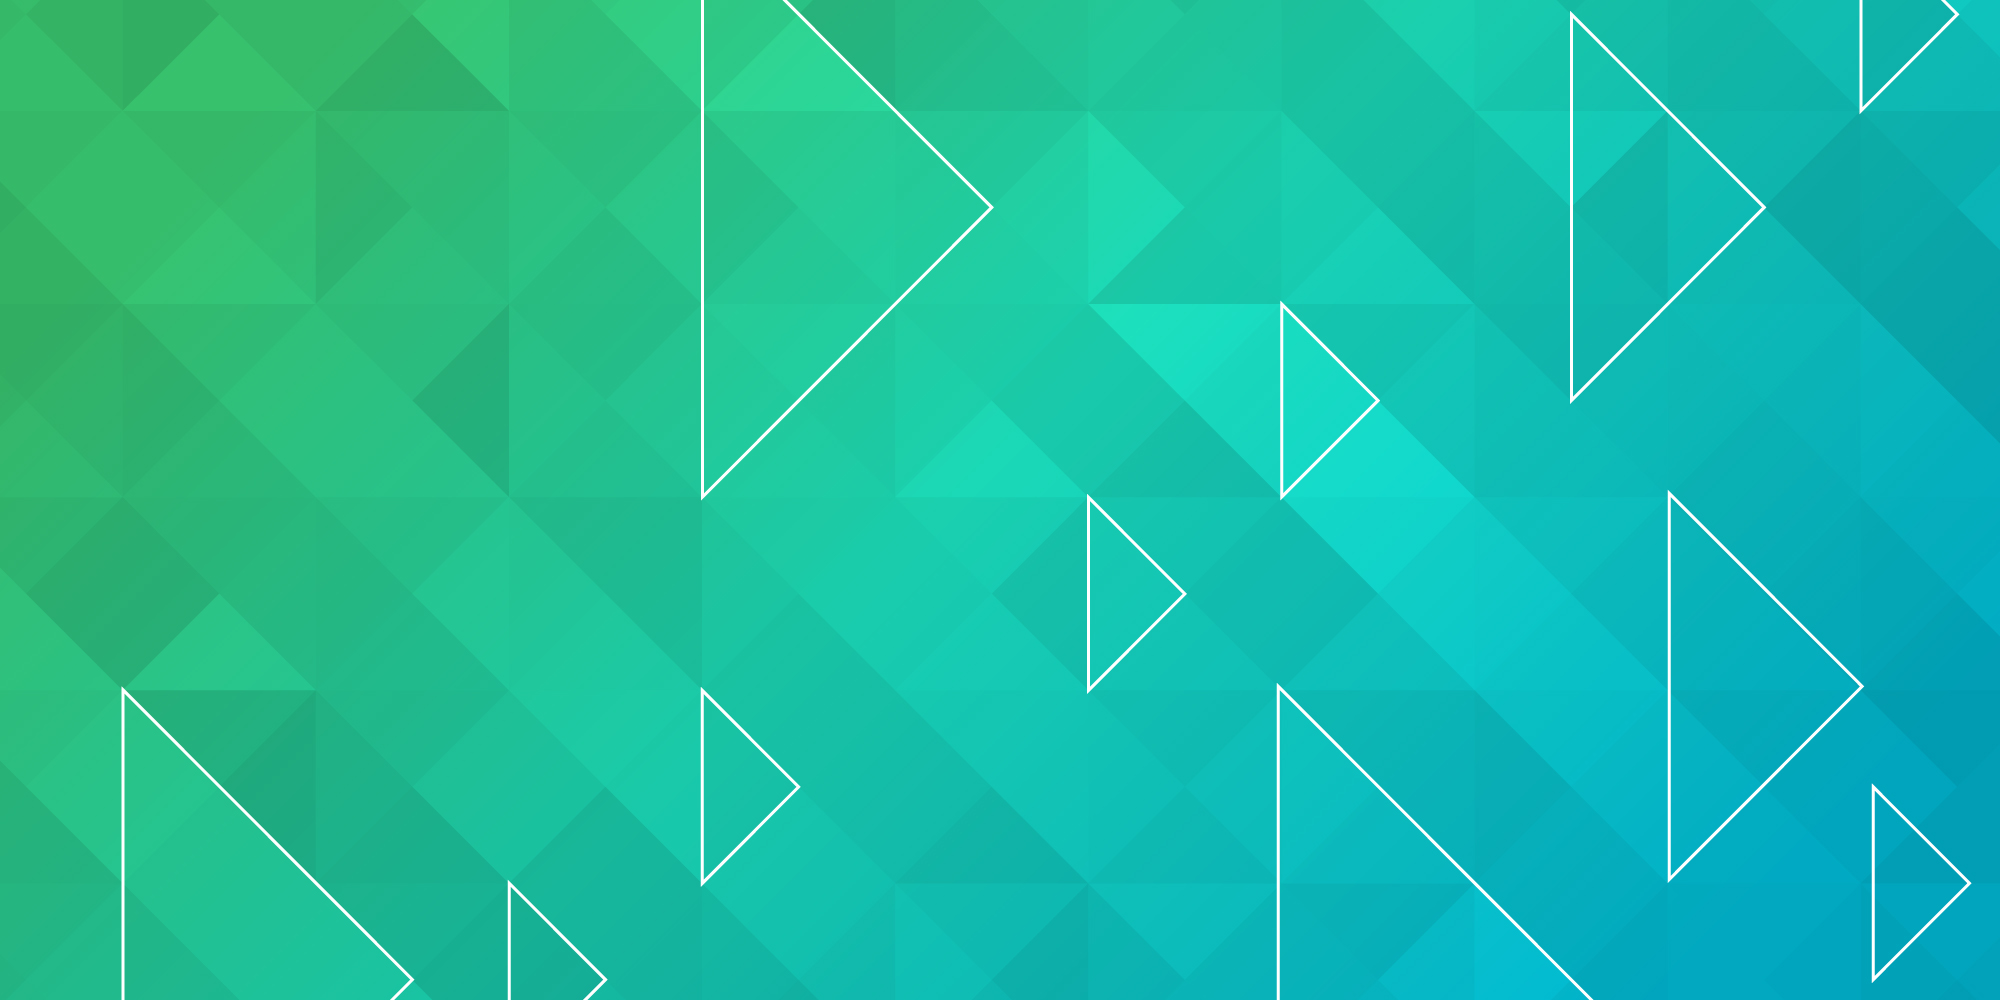 Green, teal, and blue gradient triangle pattern